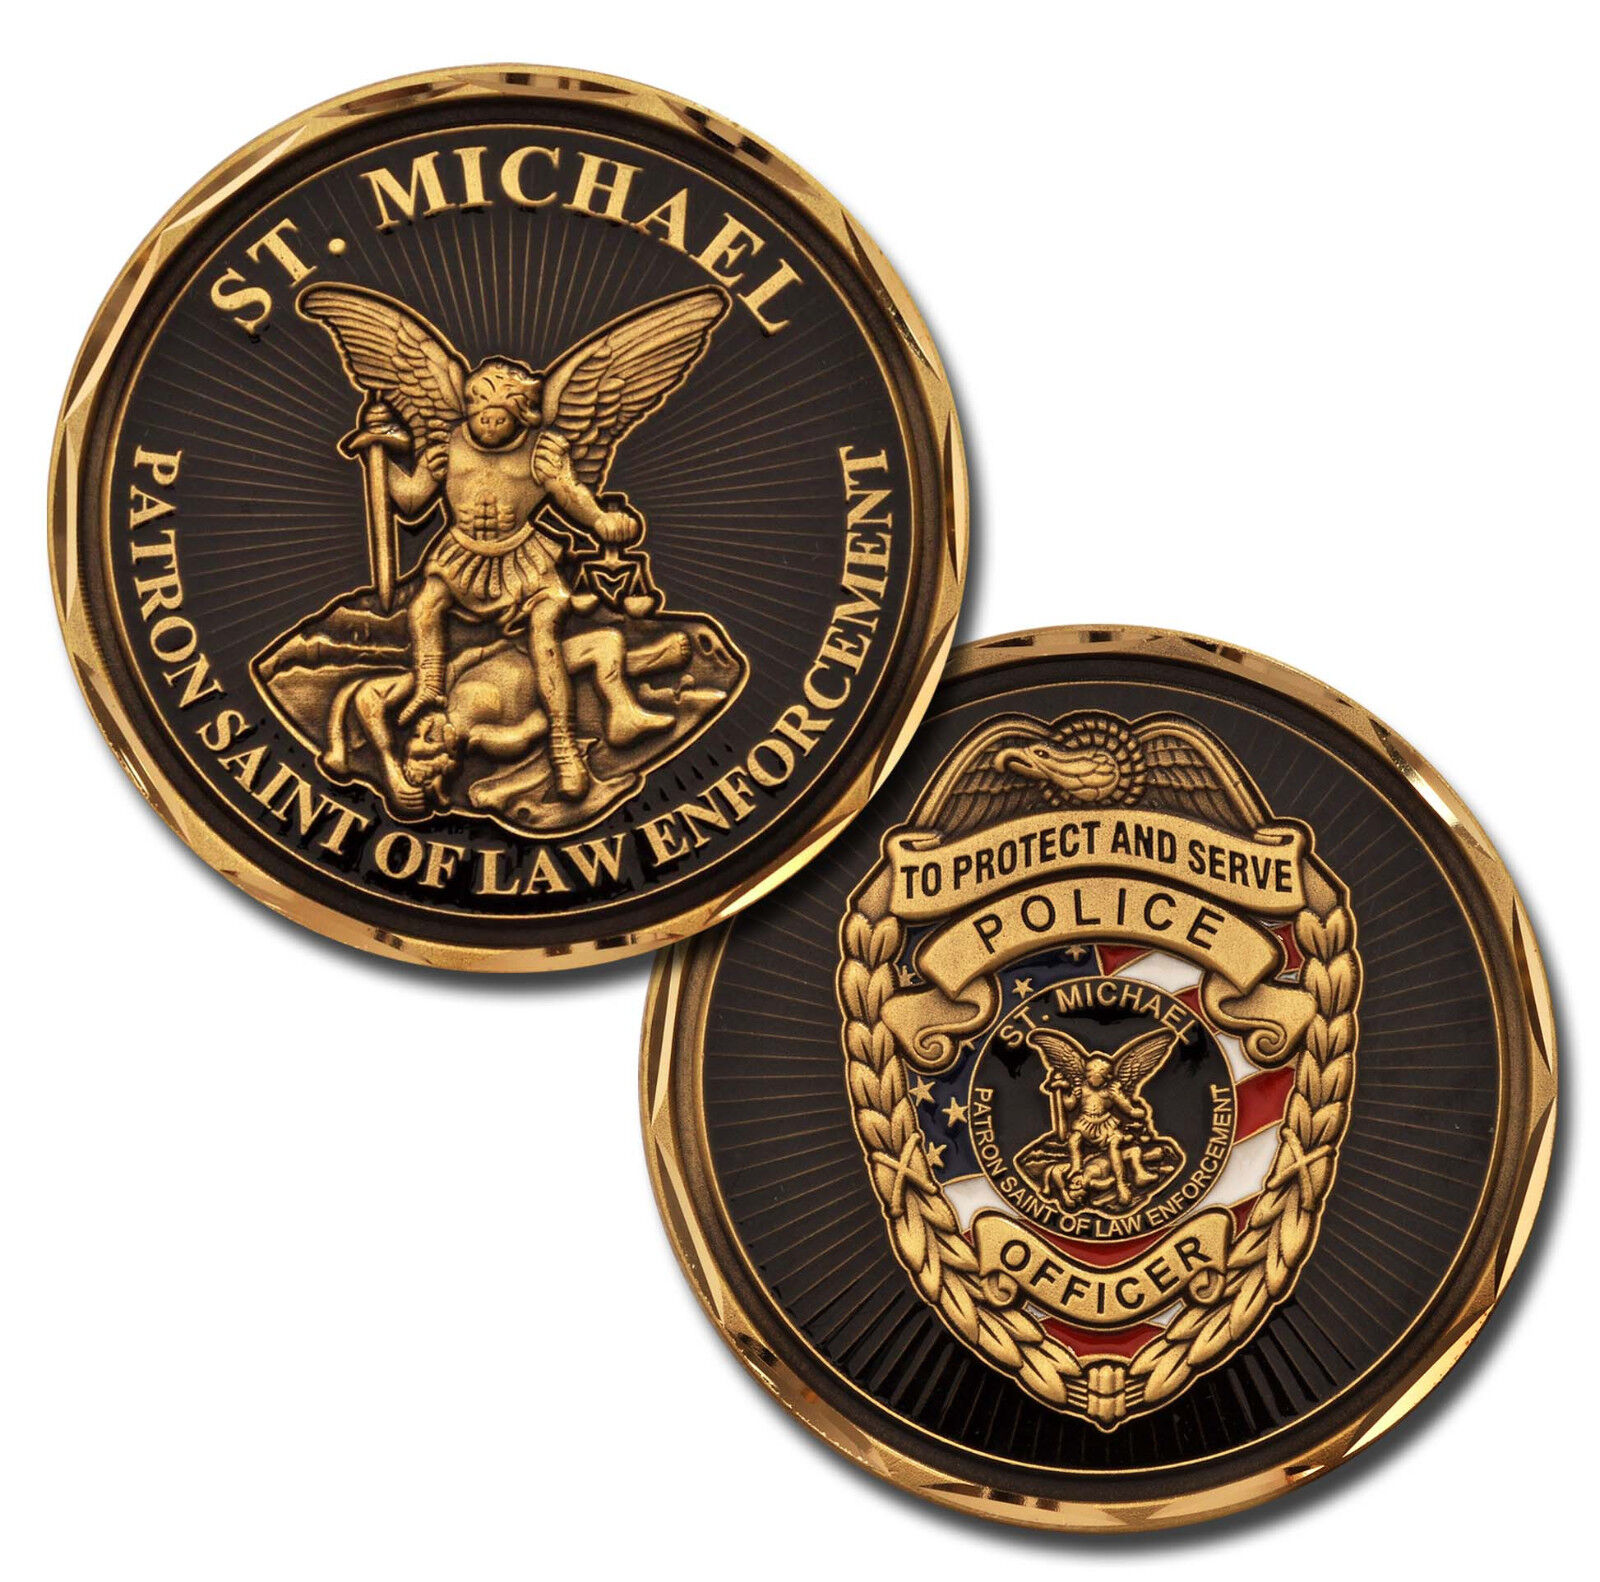 St Michael Police Officer Law Enforcement Challenge Coin